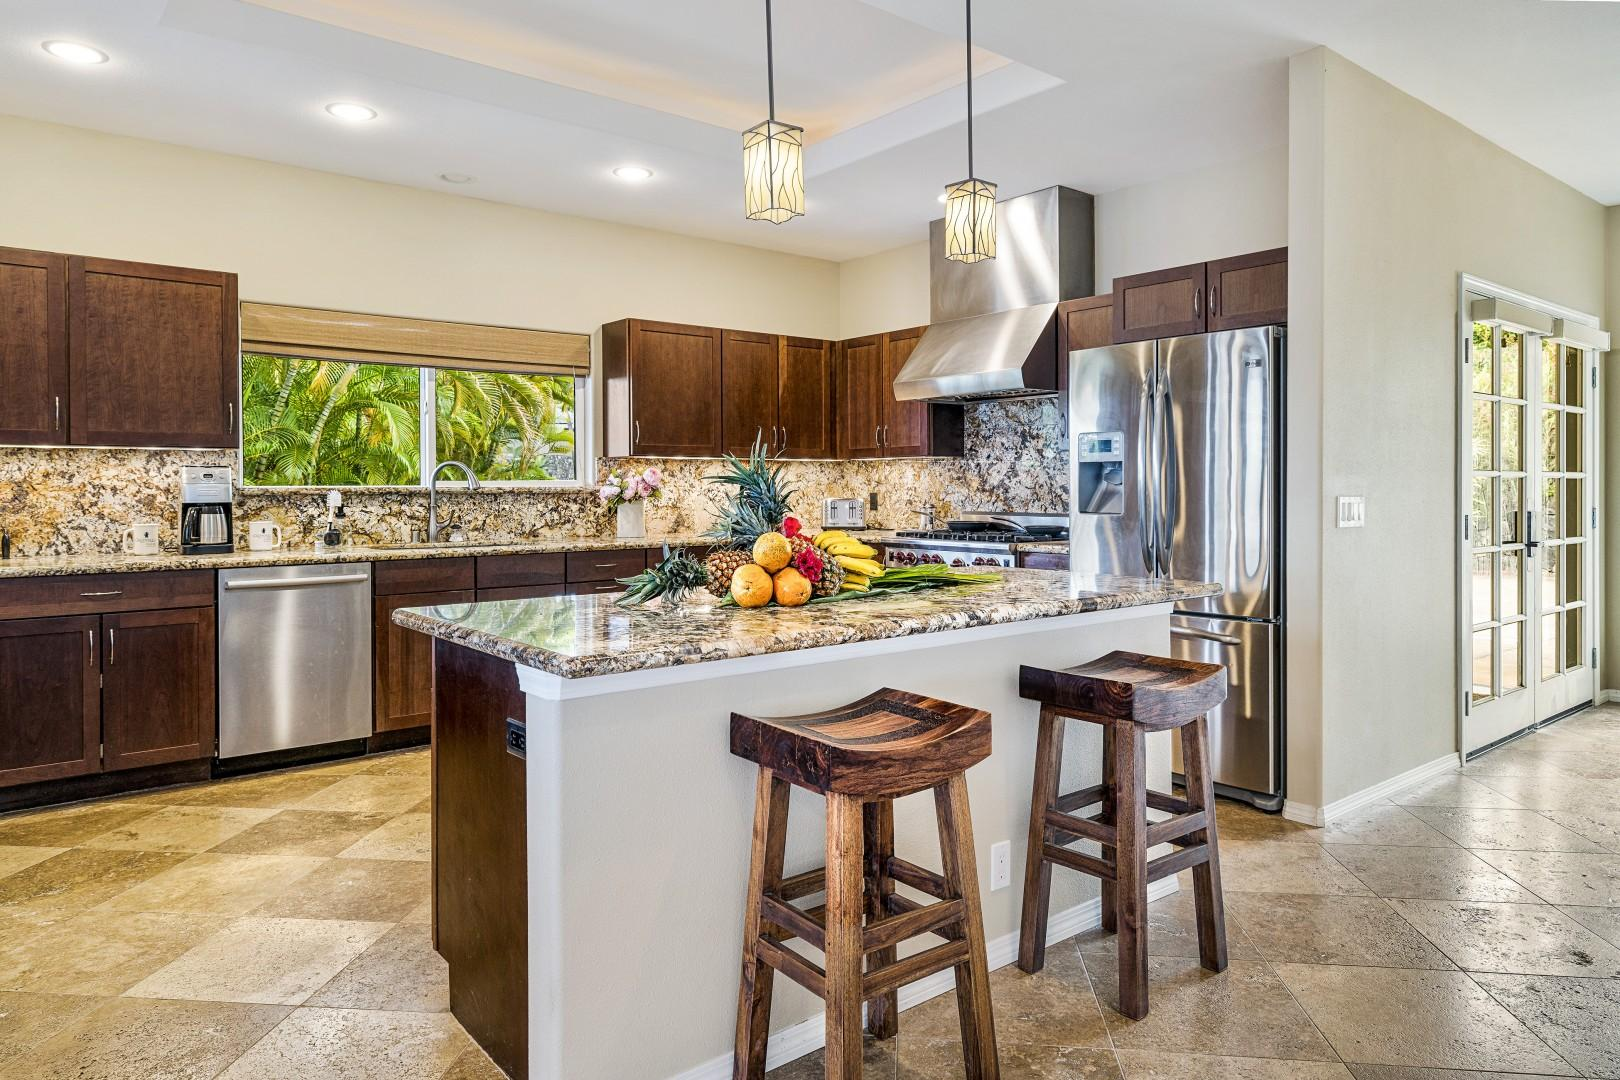 Gourmet kitchen with all the fixing to prepare your favorite meals!